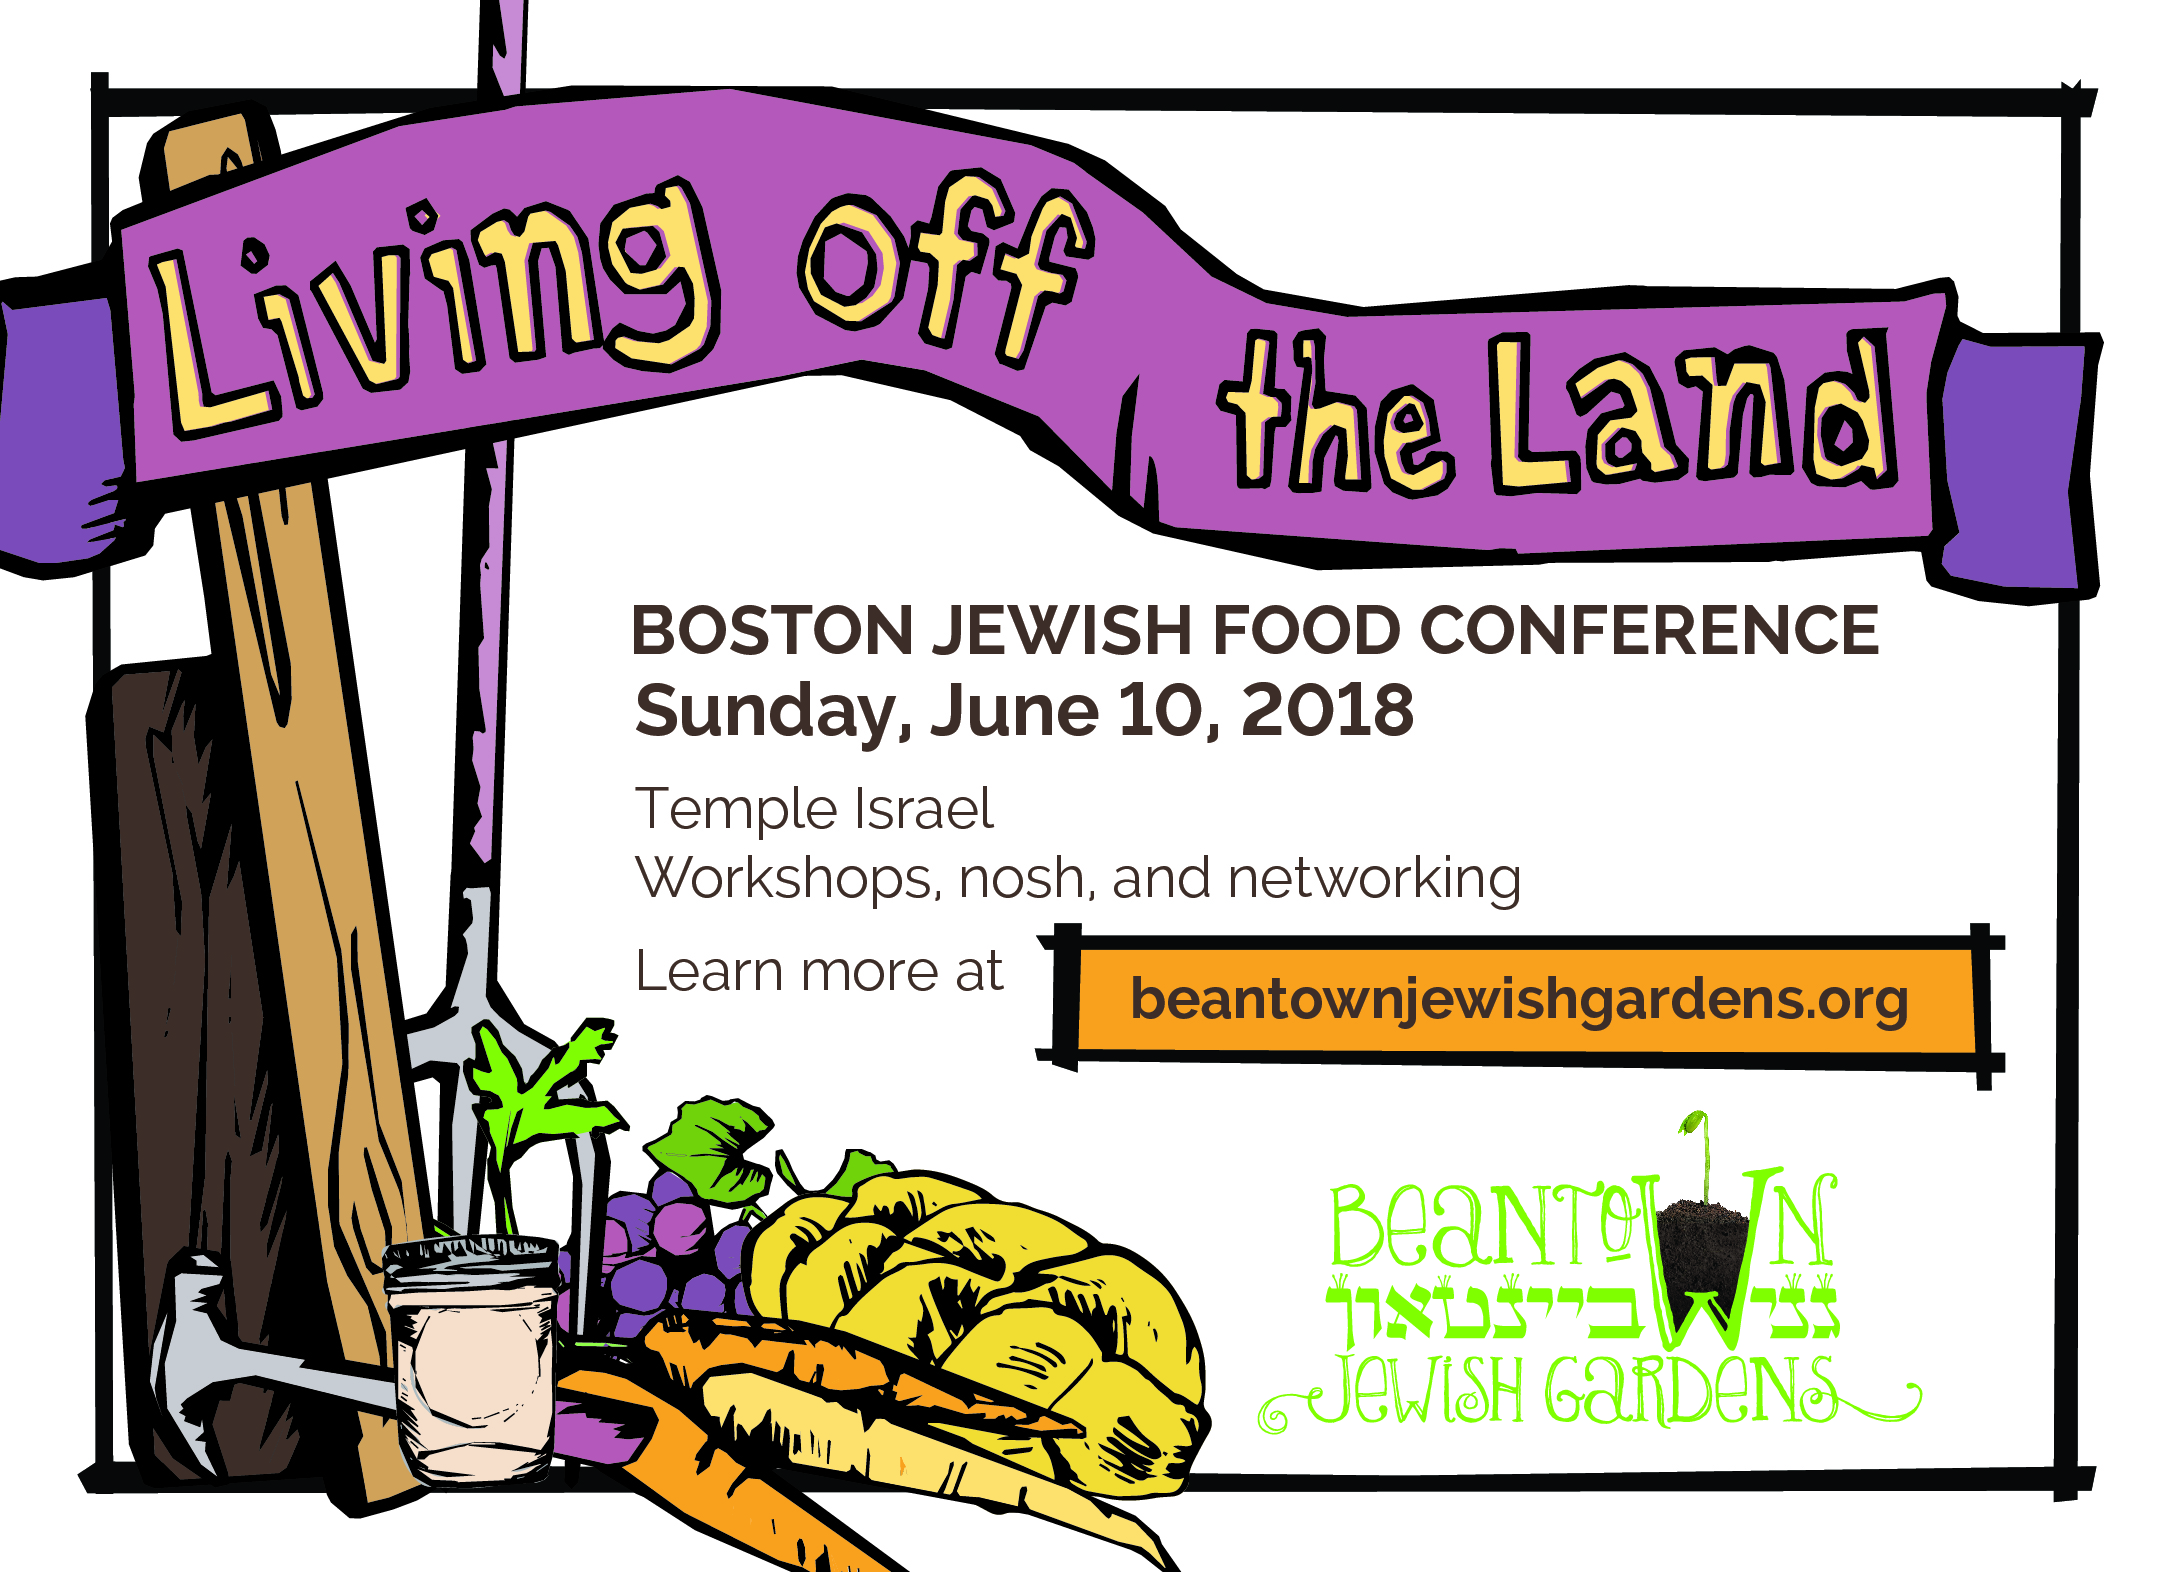 Boston Jewish Food Conference 2018 postcard